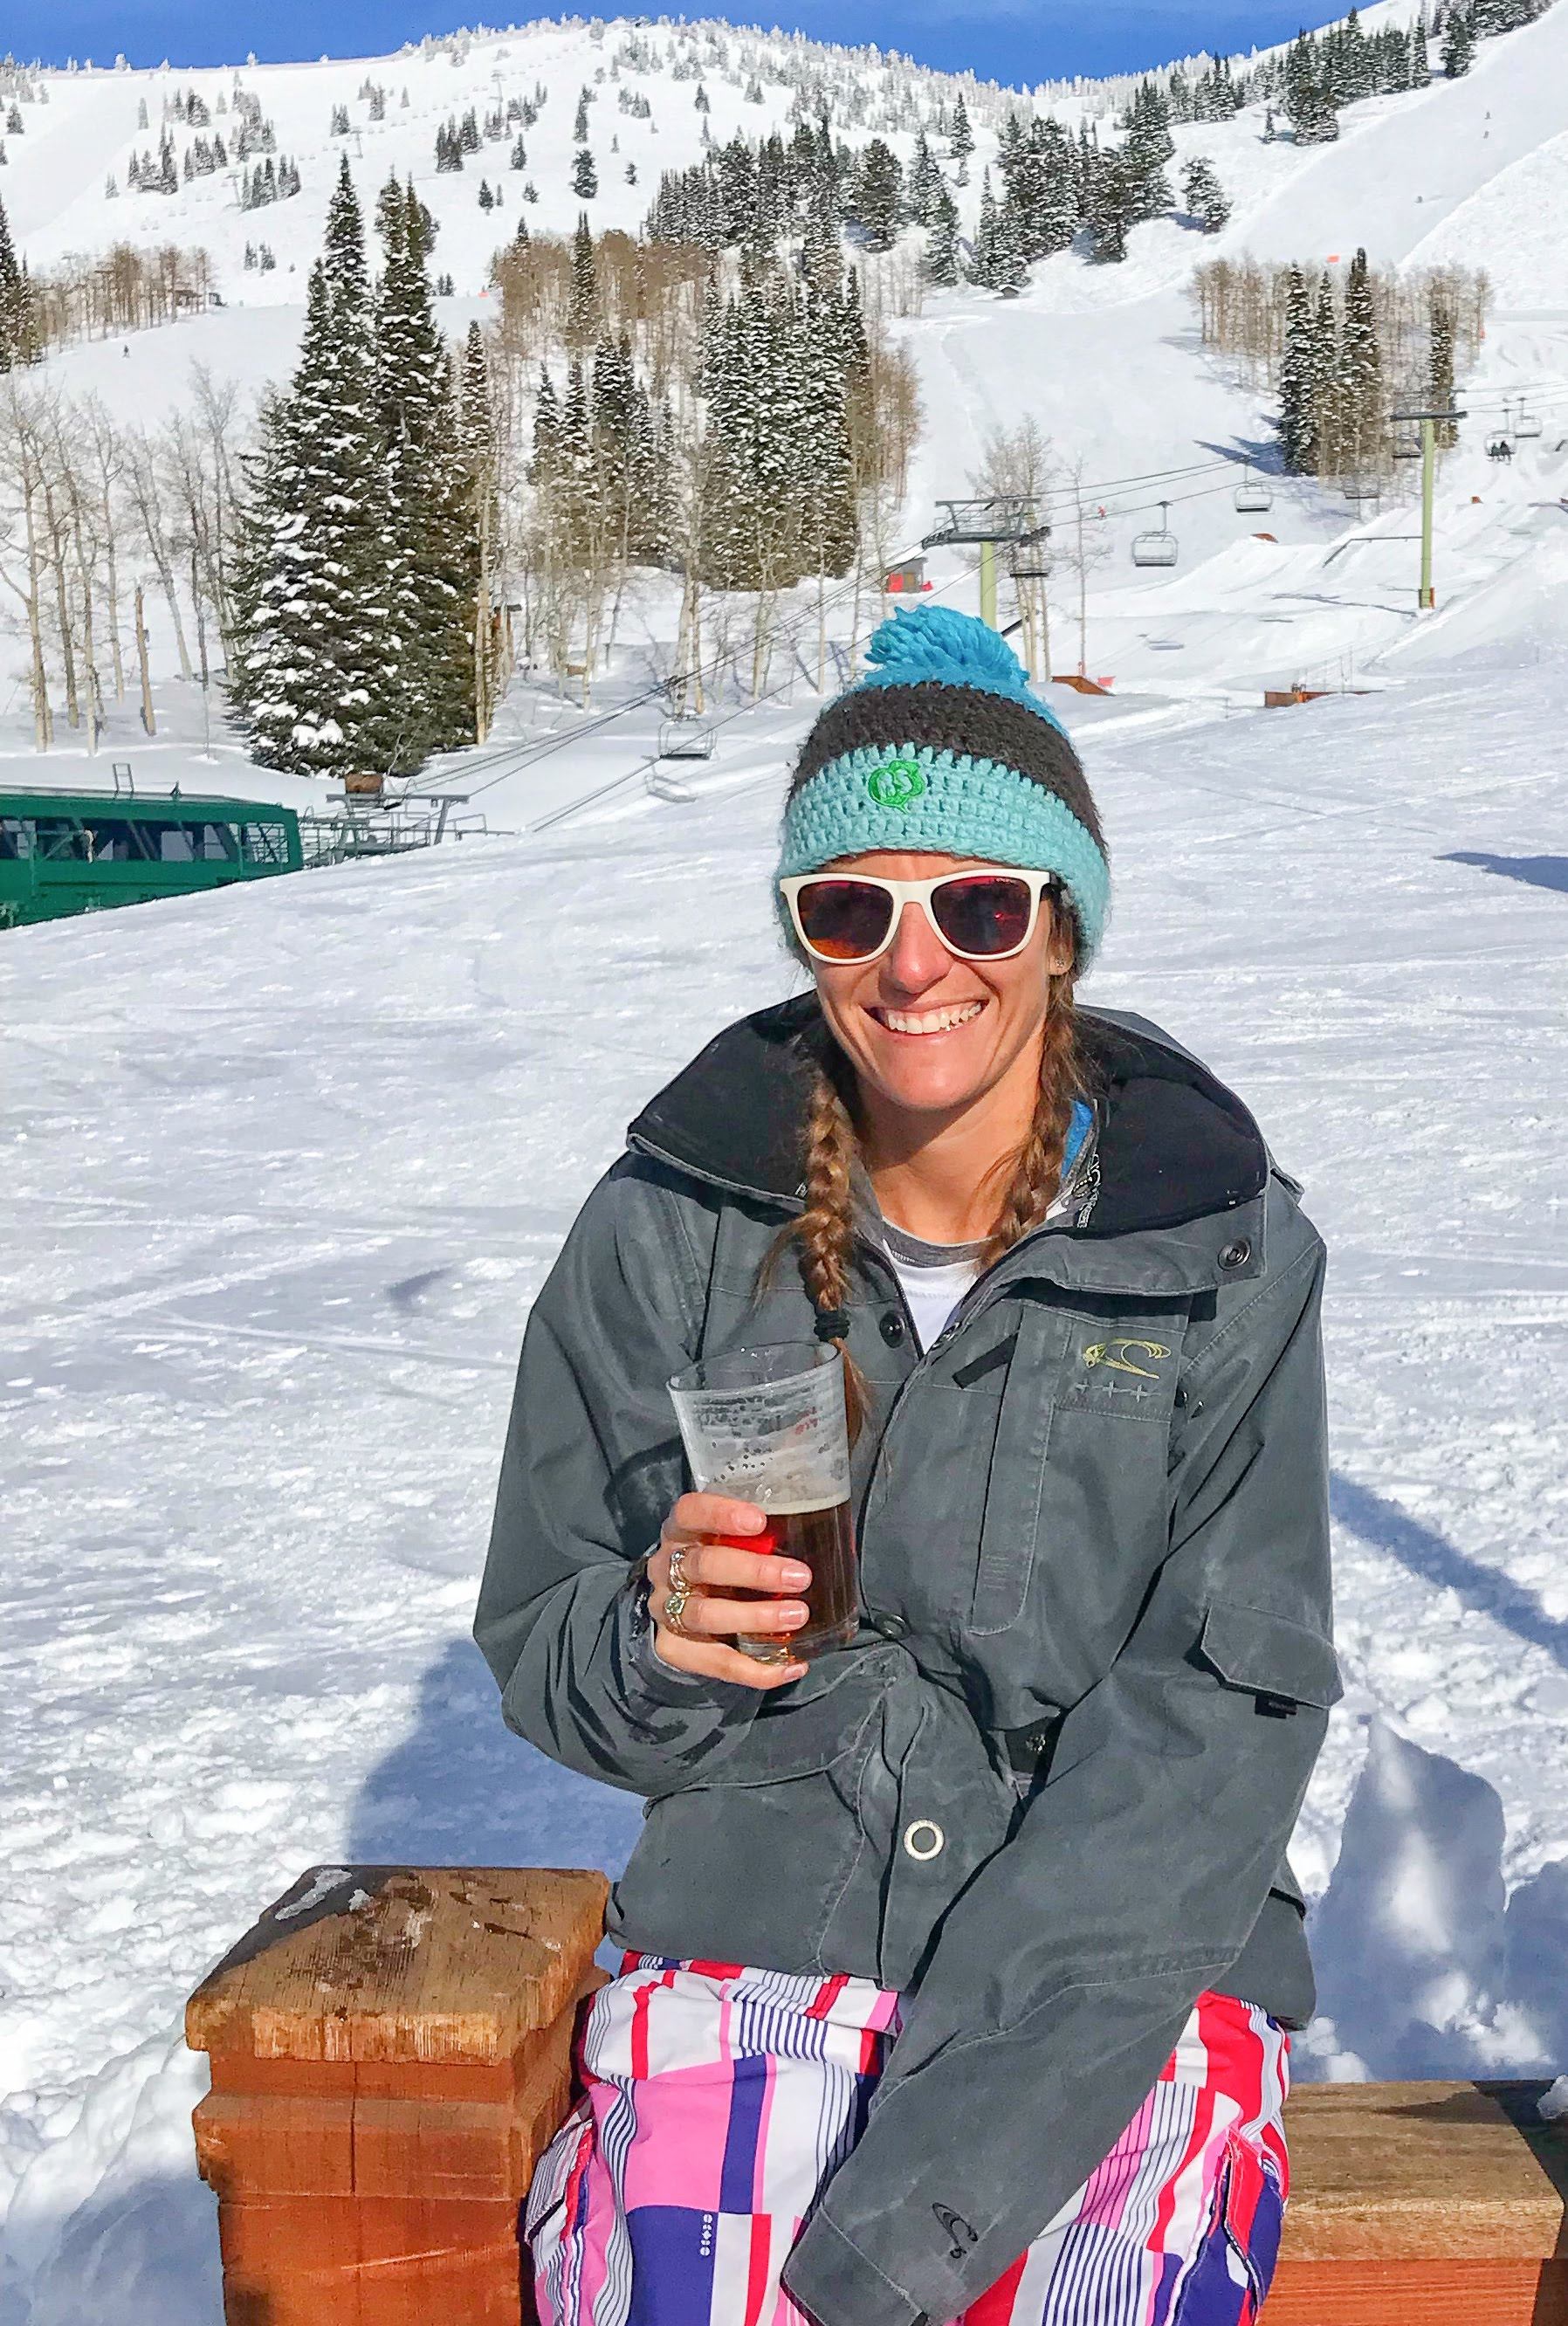 A day trip to Grand Targhee